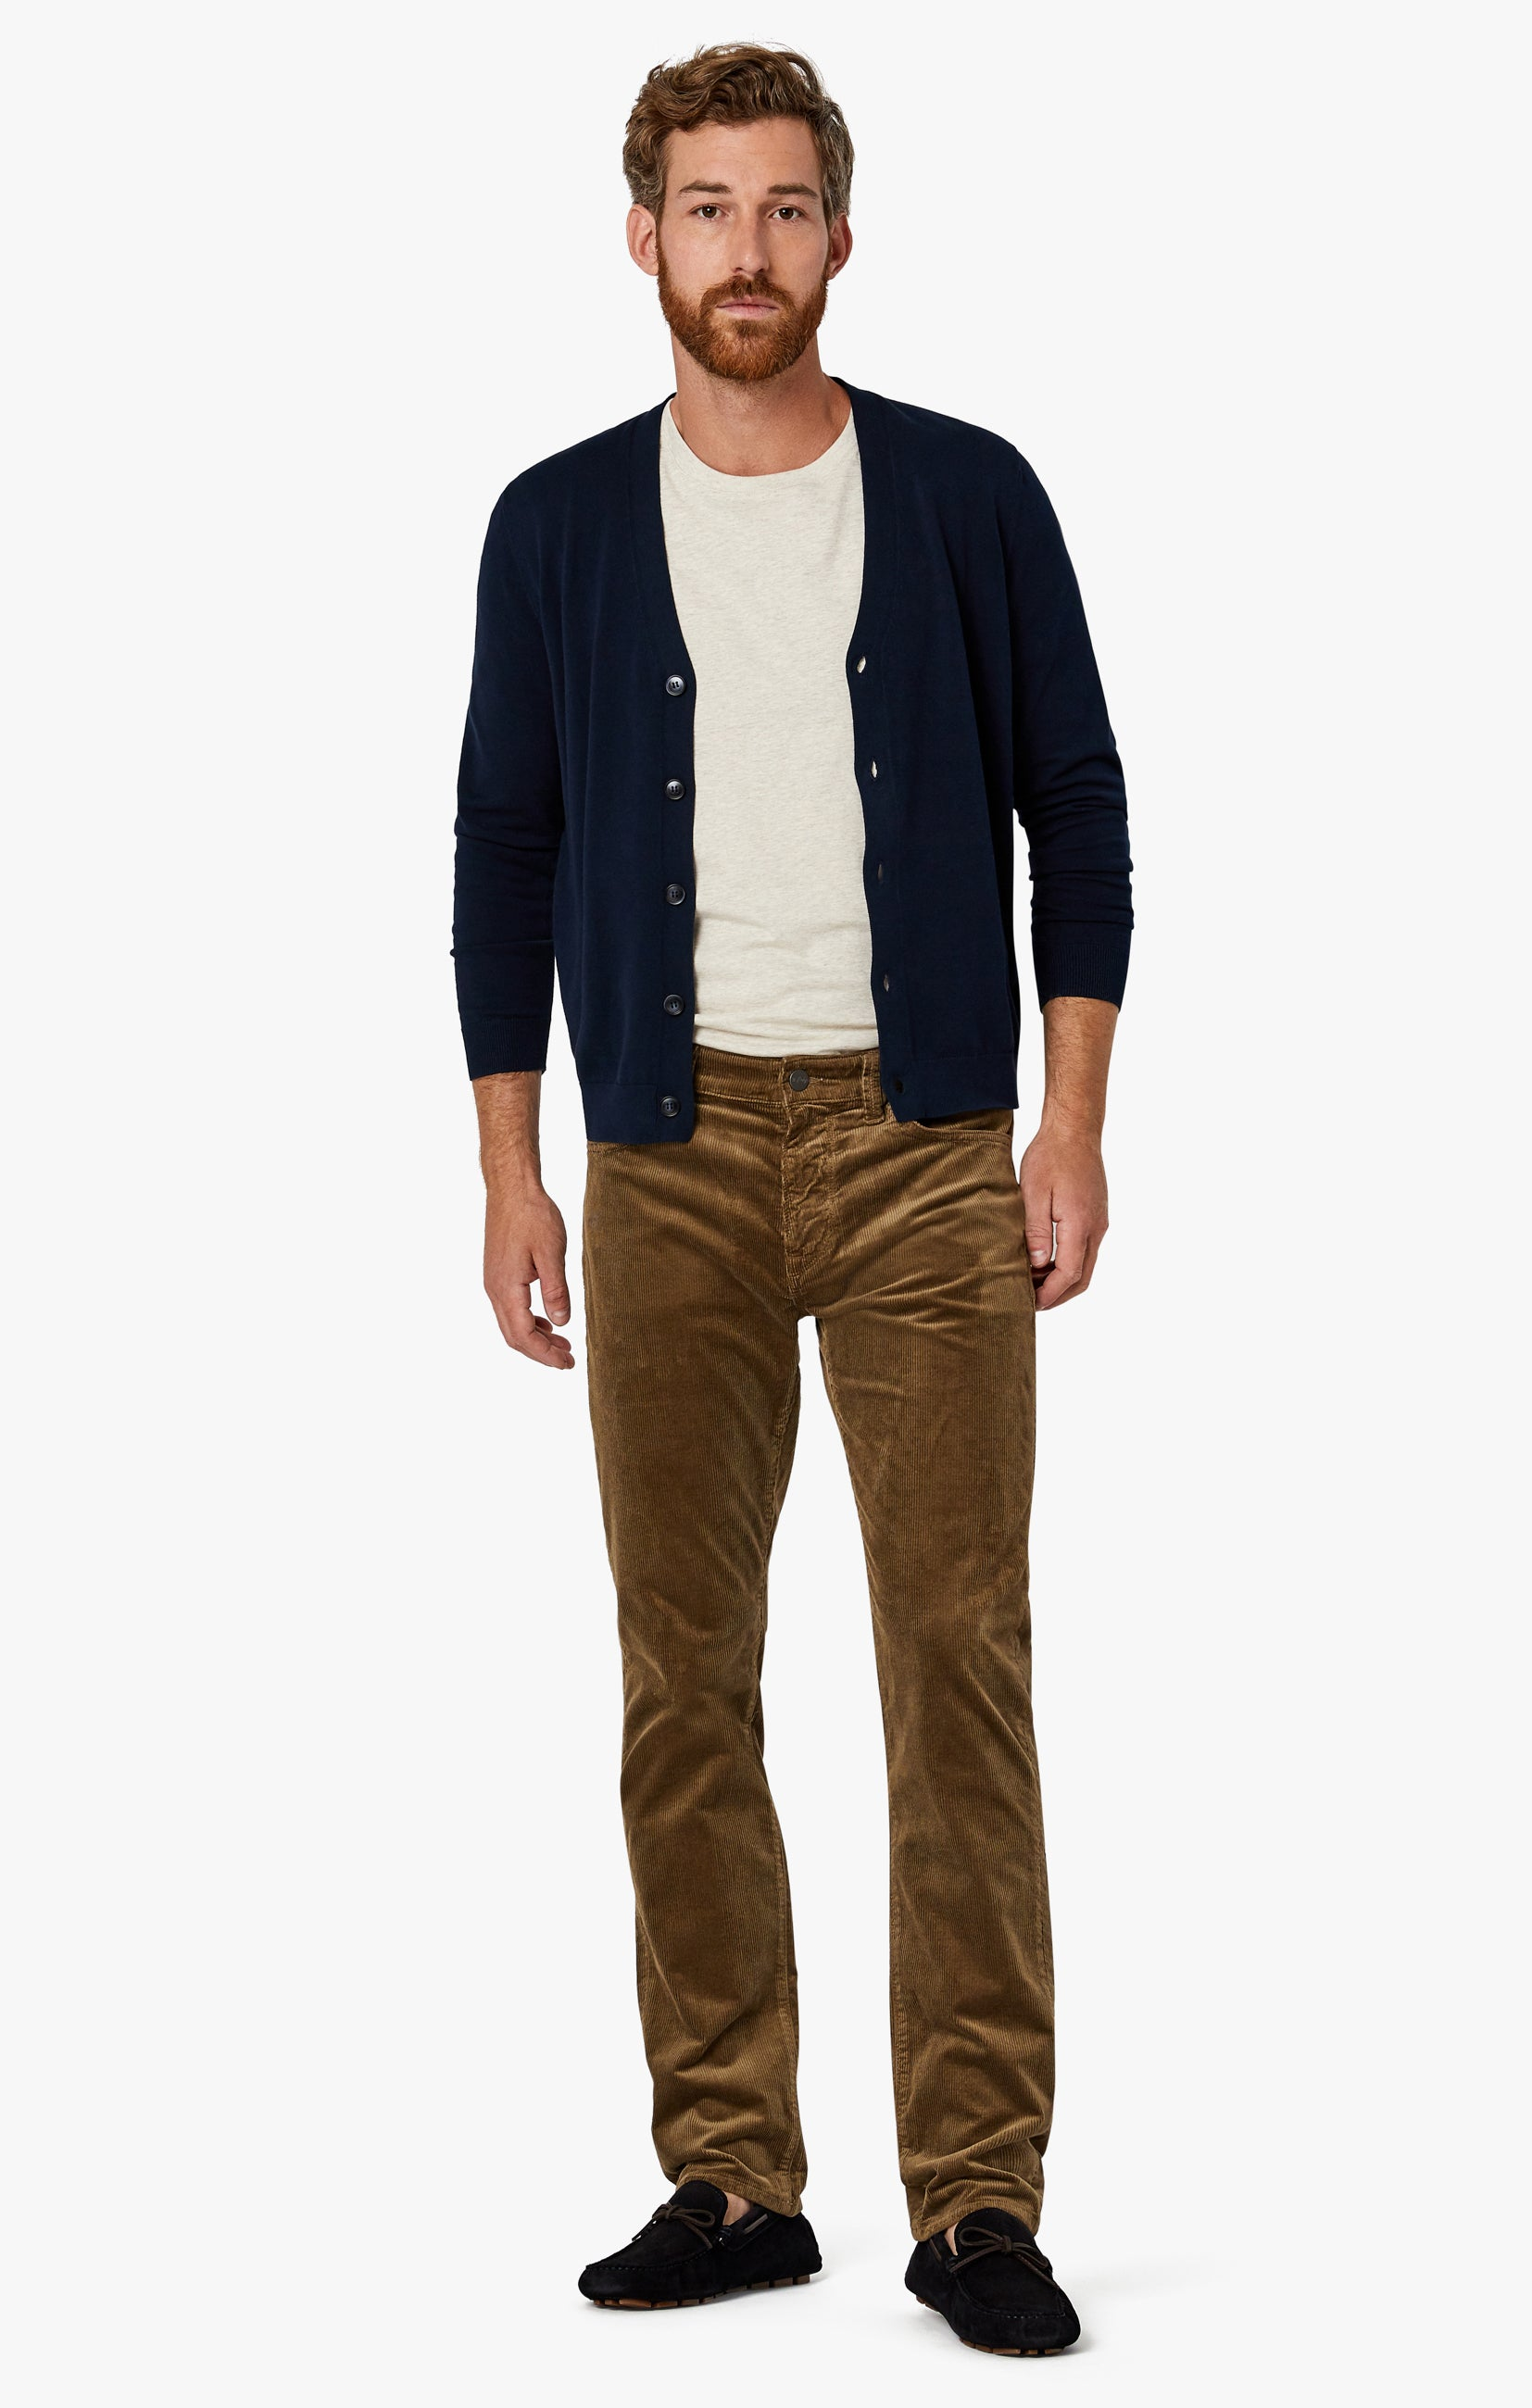 Charisma Relaxed Straight Pants in Tobacco Cord Image 3